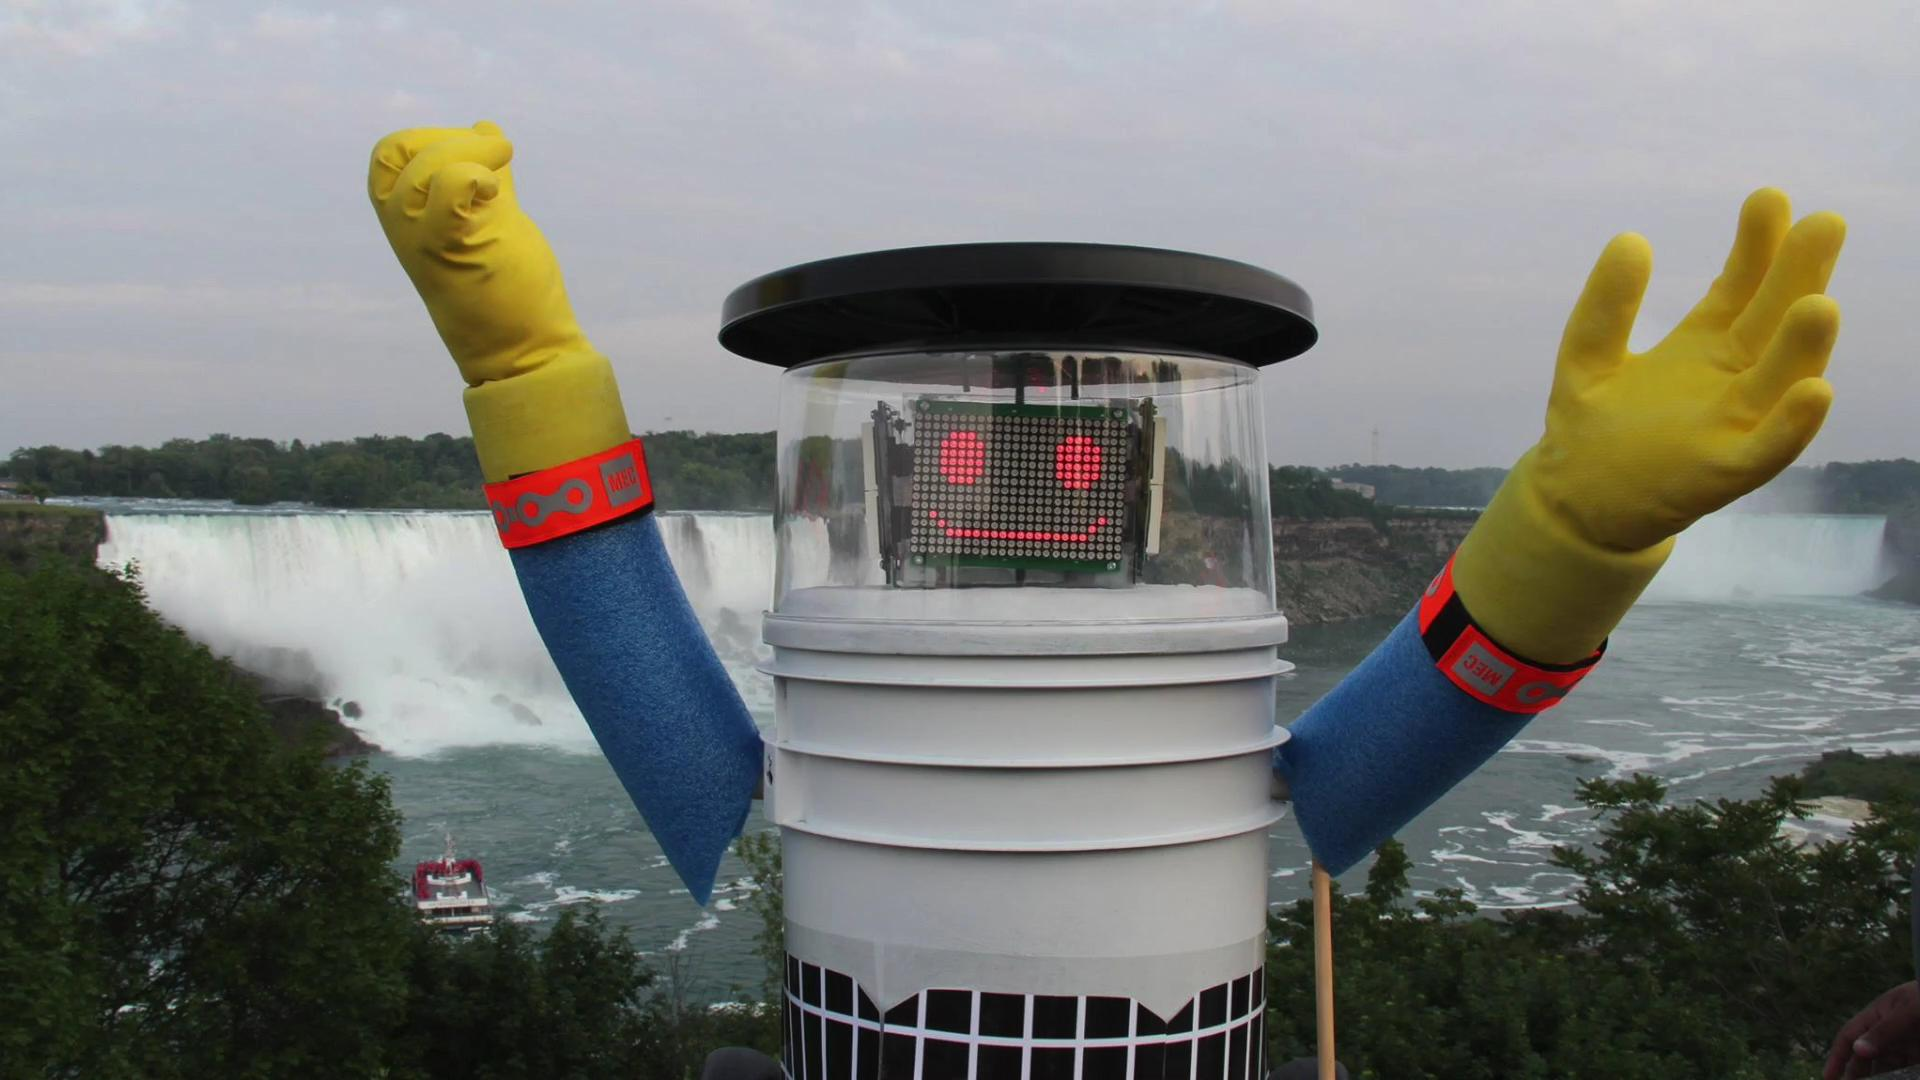 Adorable hitchhiking robot's trip ends tragically